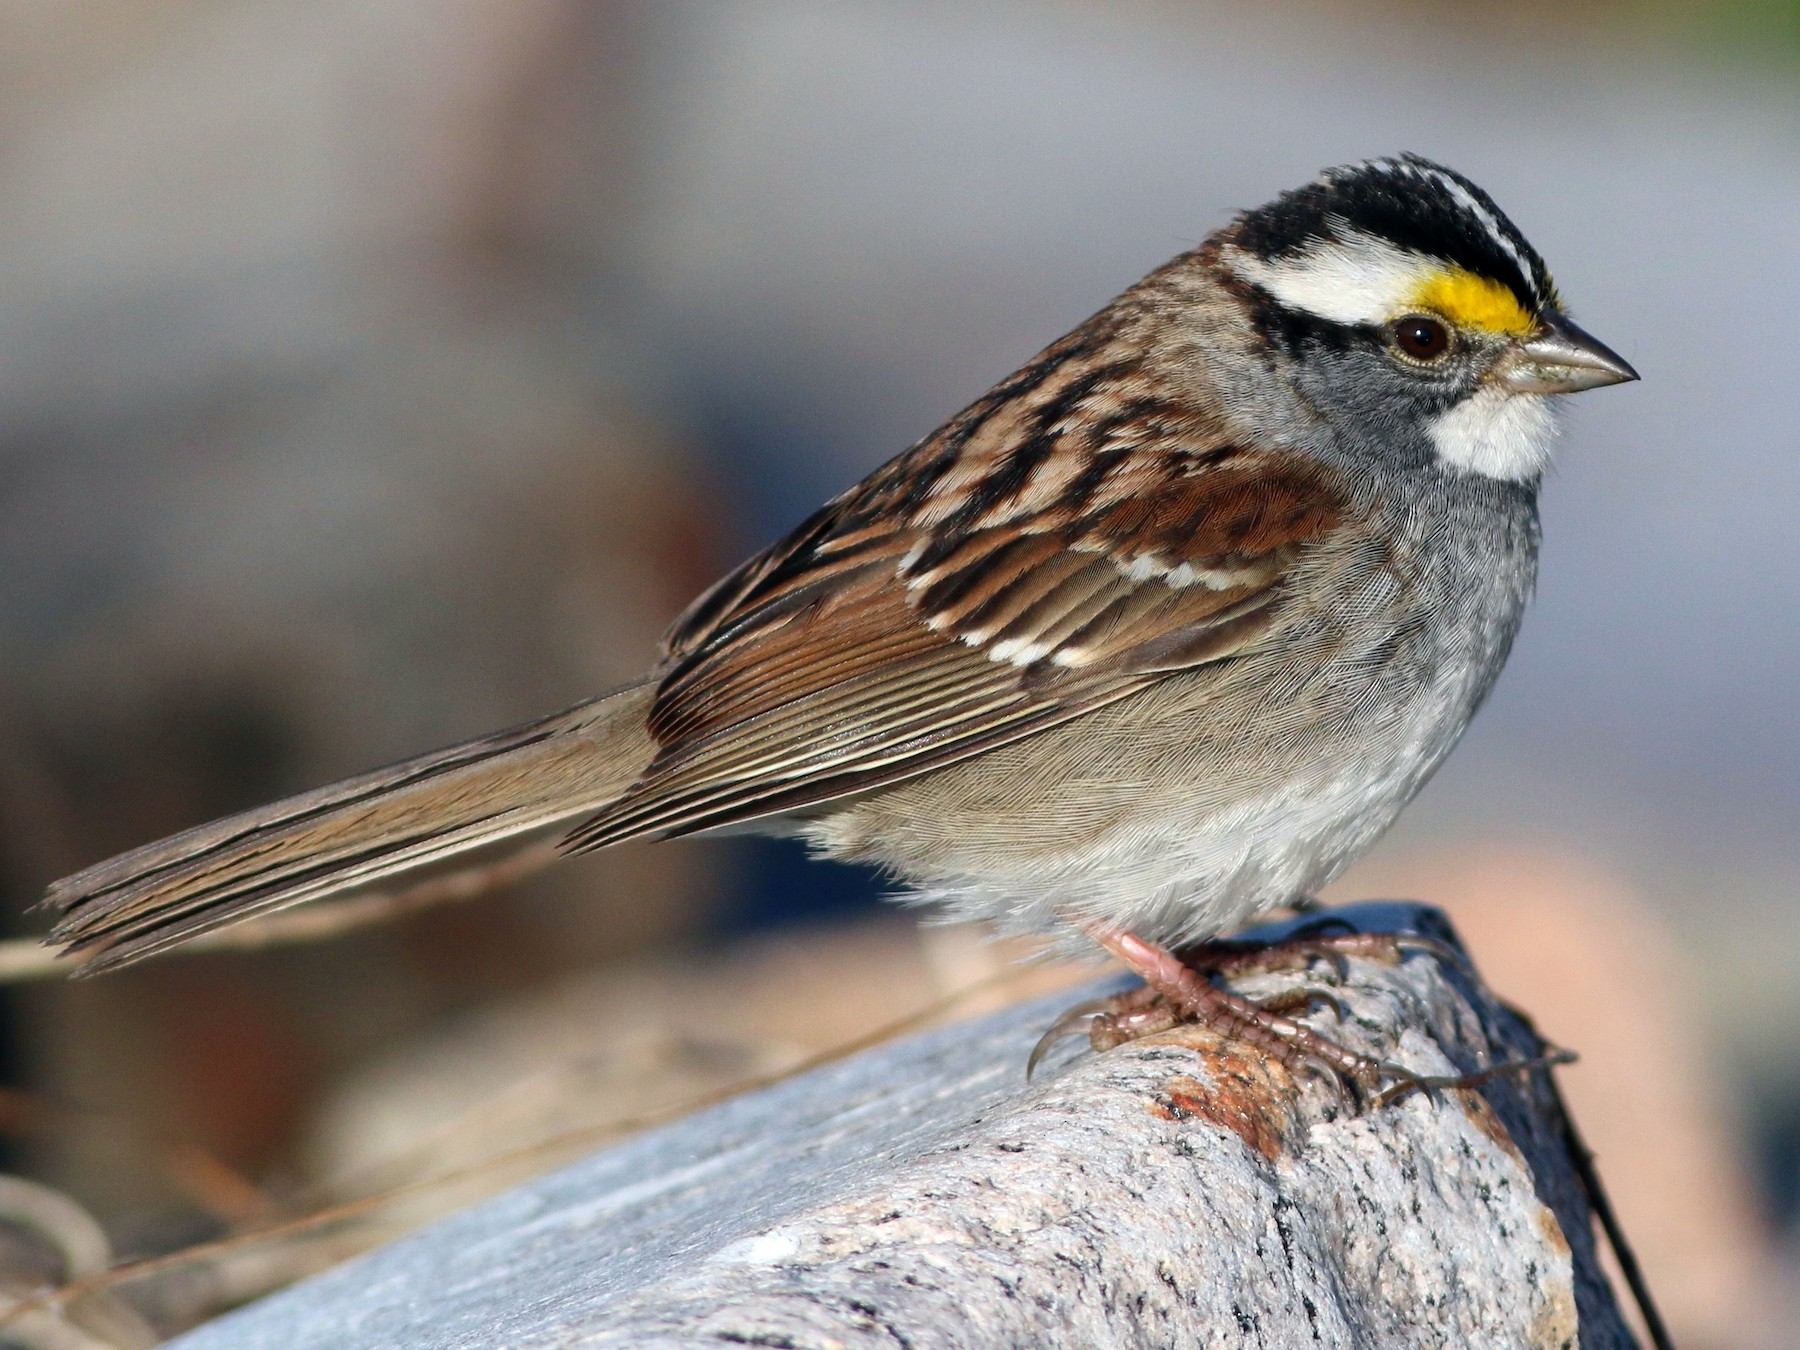 White-throated Sparrow - Keenan Yakola